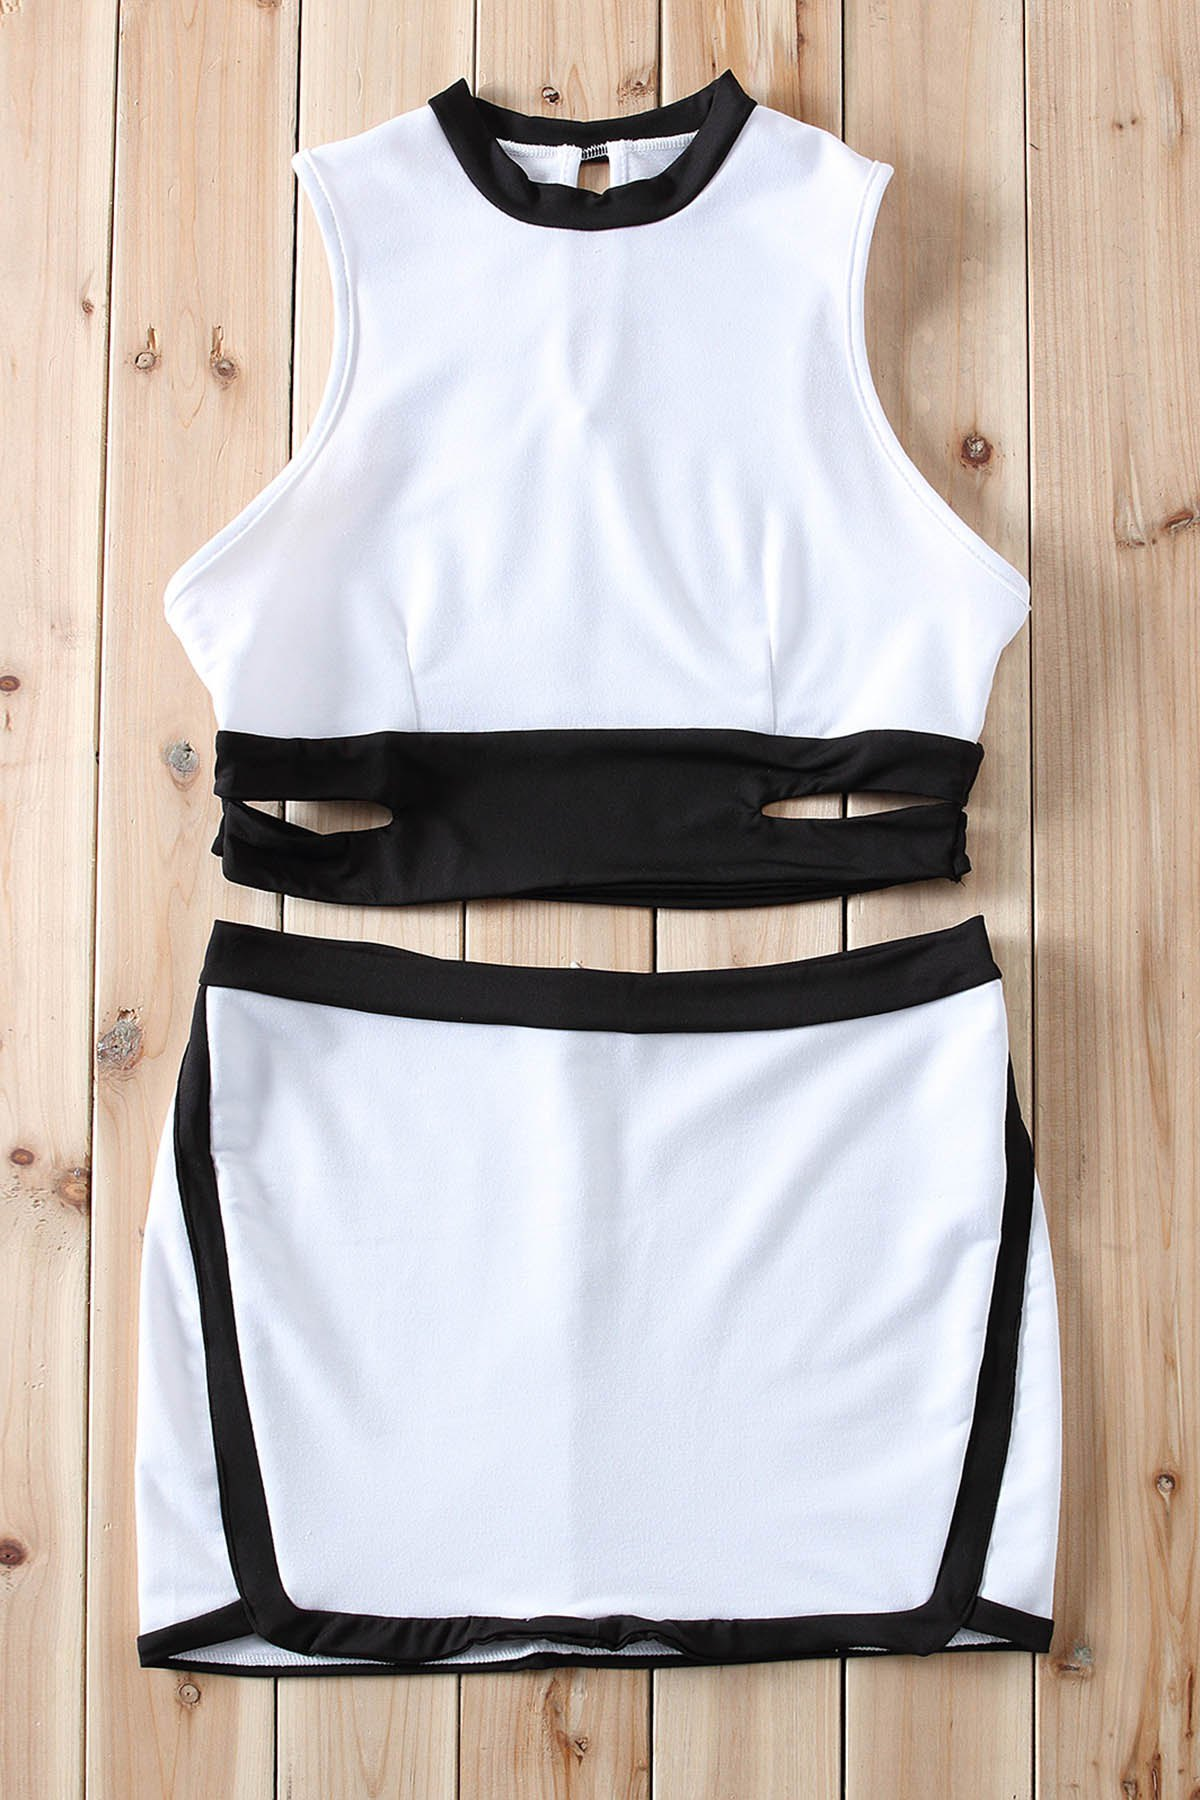 Sexy Hollow Out Stand Collar Backless Crop Top and Skirt Twinset For Women - WHITE L